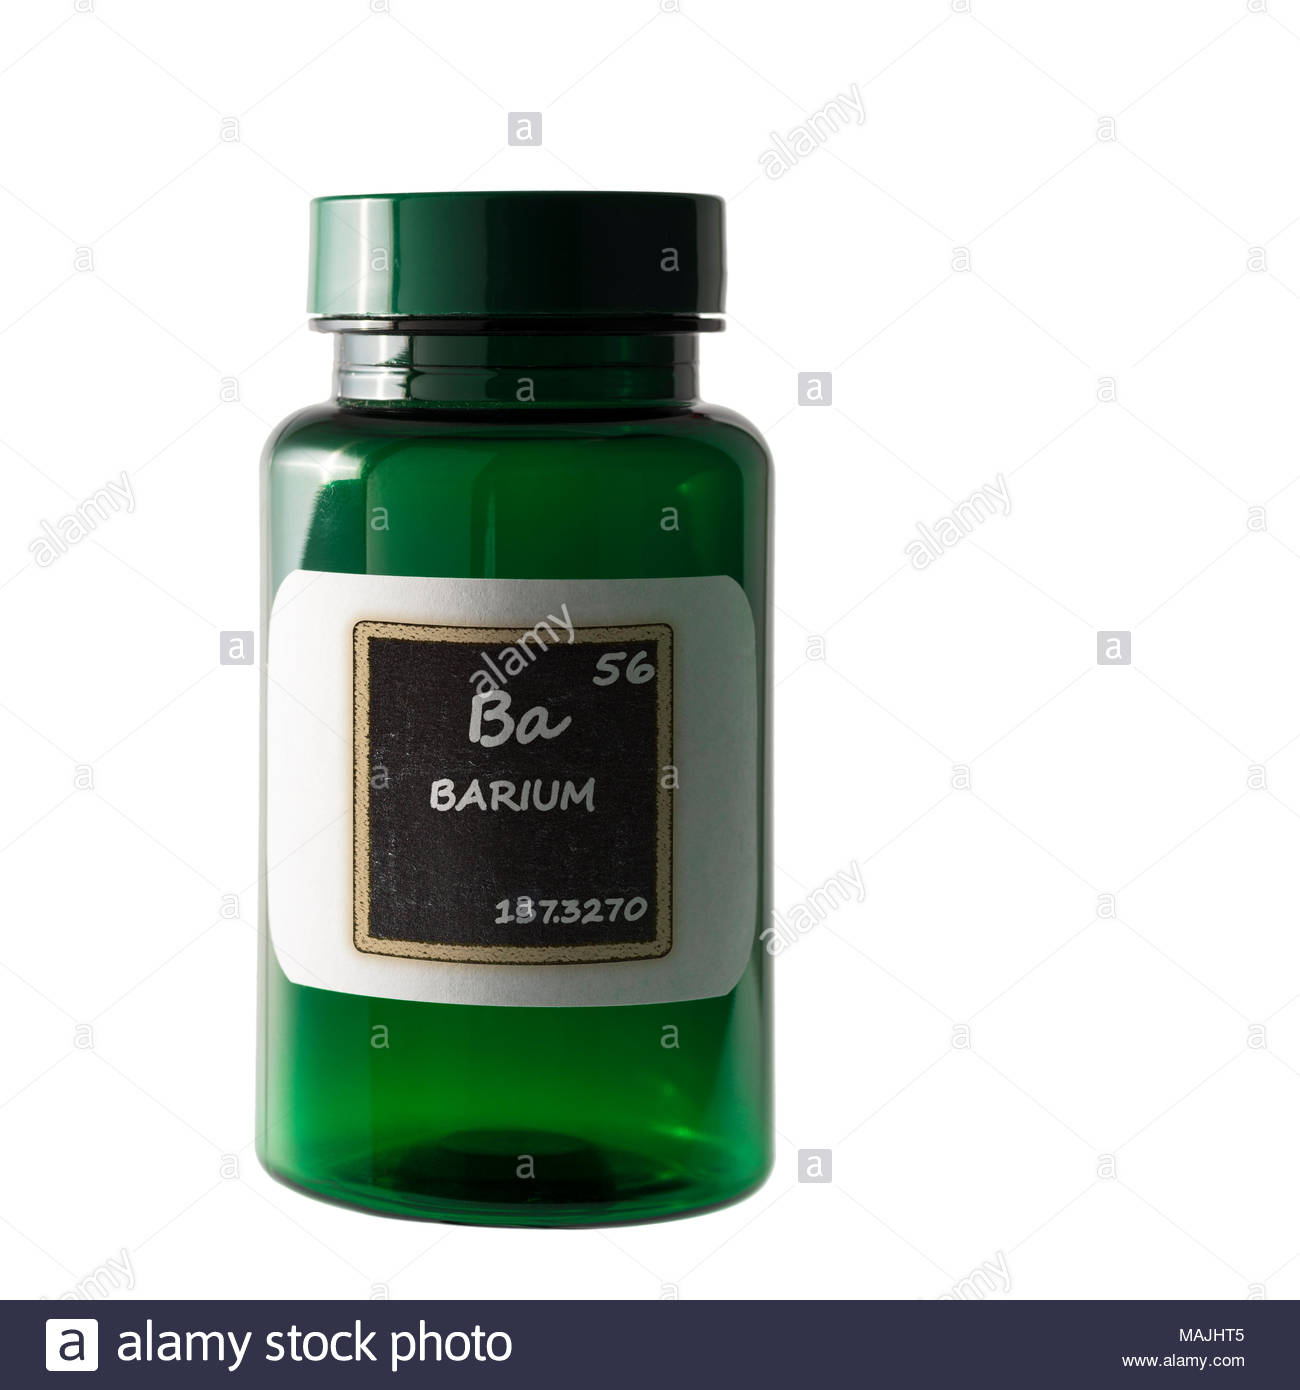 Barium, periodic table details  shown on bottle label. - Stock Image